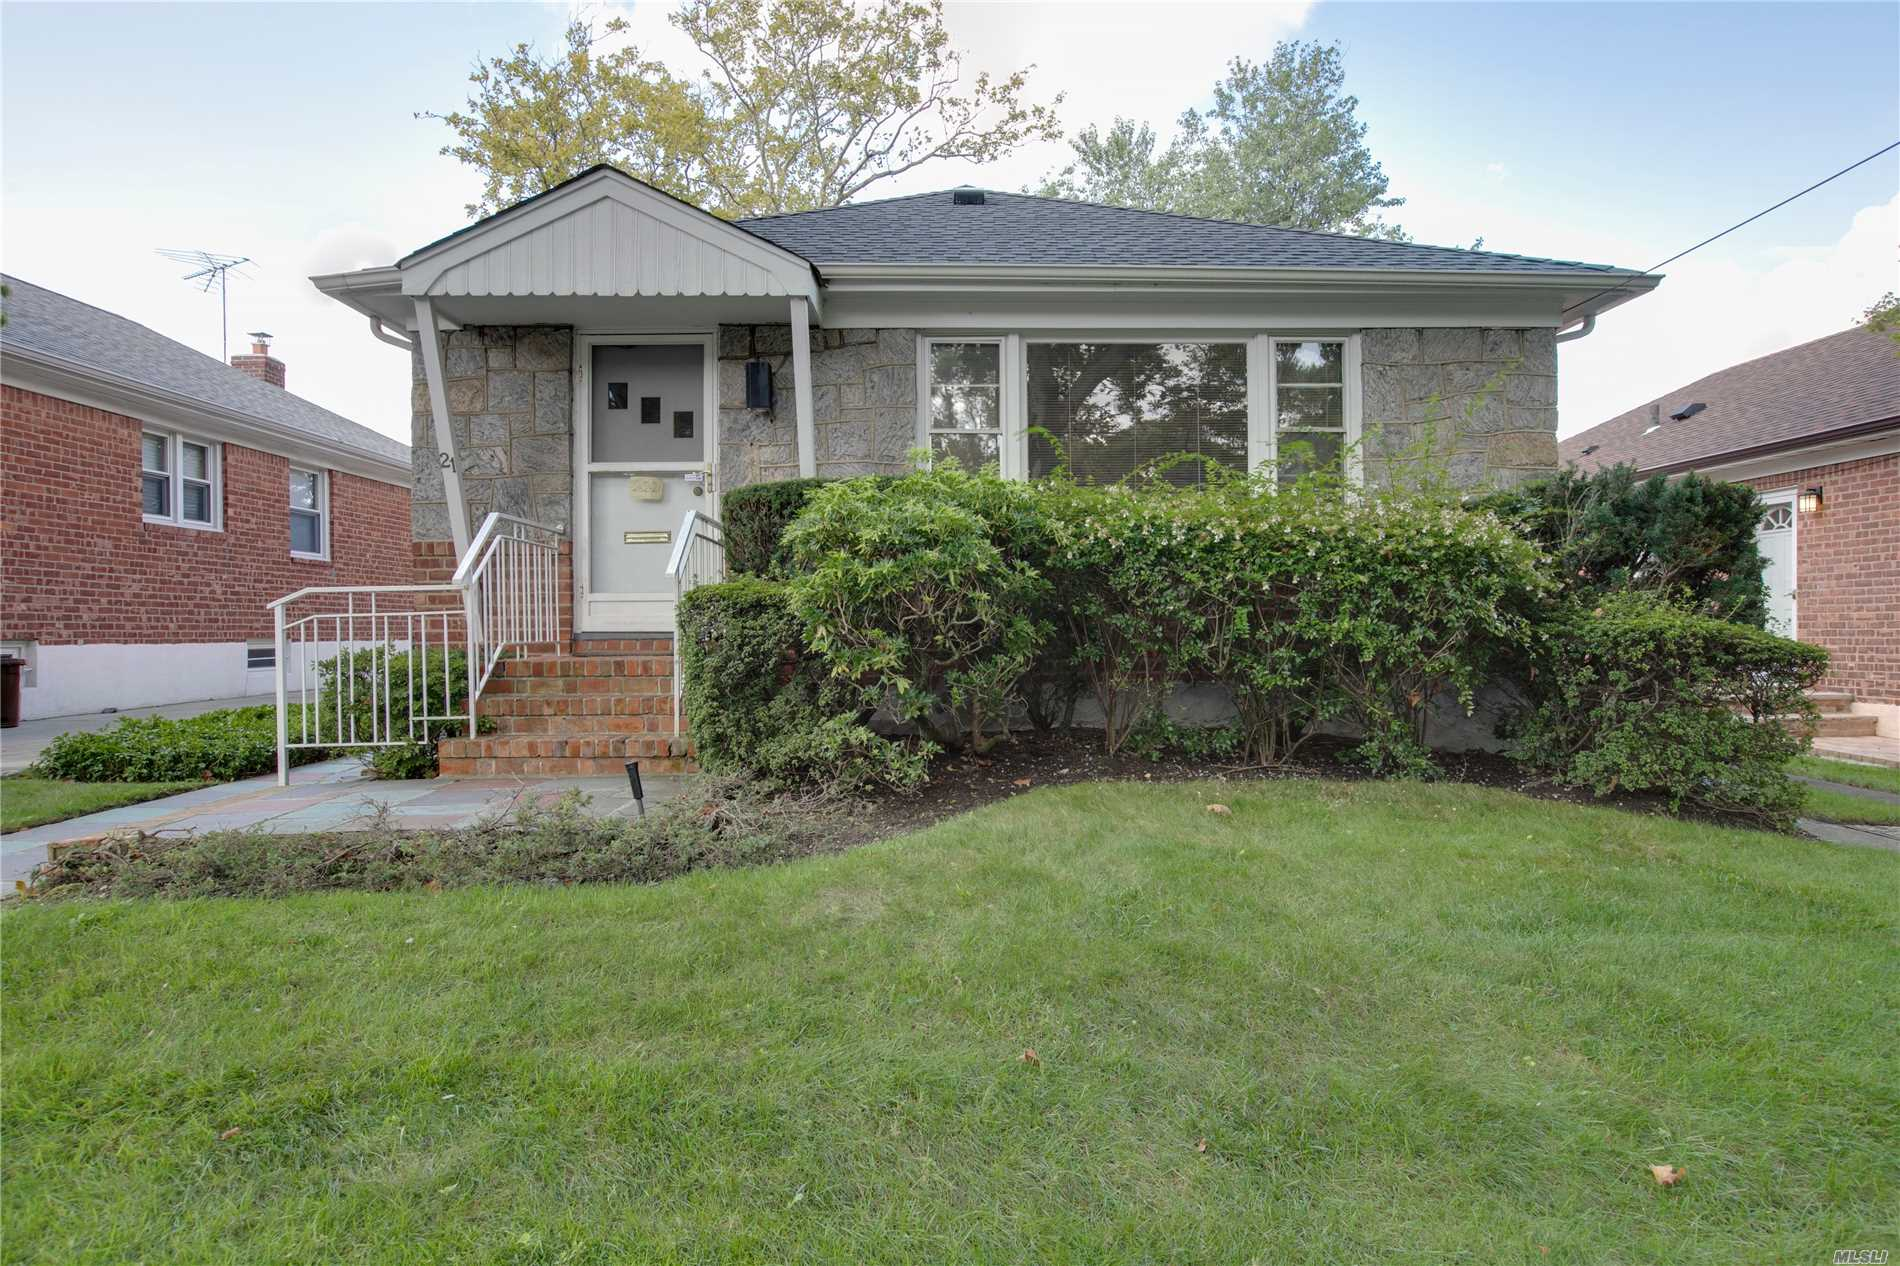 Beautiful Detached Whole Ranch House In Quiet Neighborhood. 3 Brs, 2 Baths. Finished Basement. Private Backyard. Excellent Condition! Prime Littleneck Location! School District #26. Close To Shopping, Bus, Schools, Major Highway Etc.